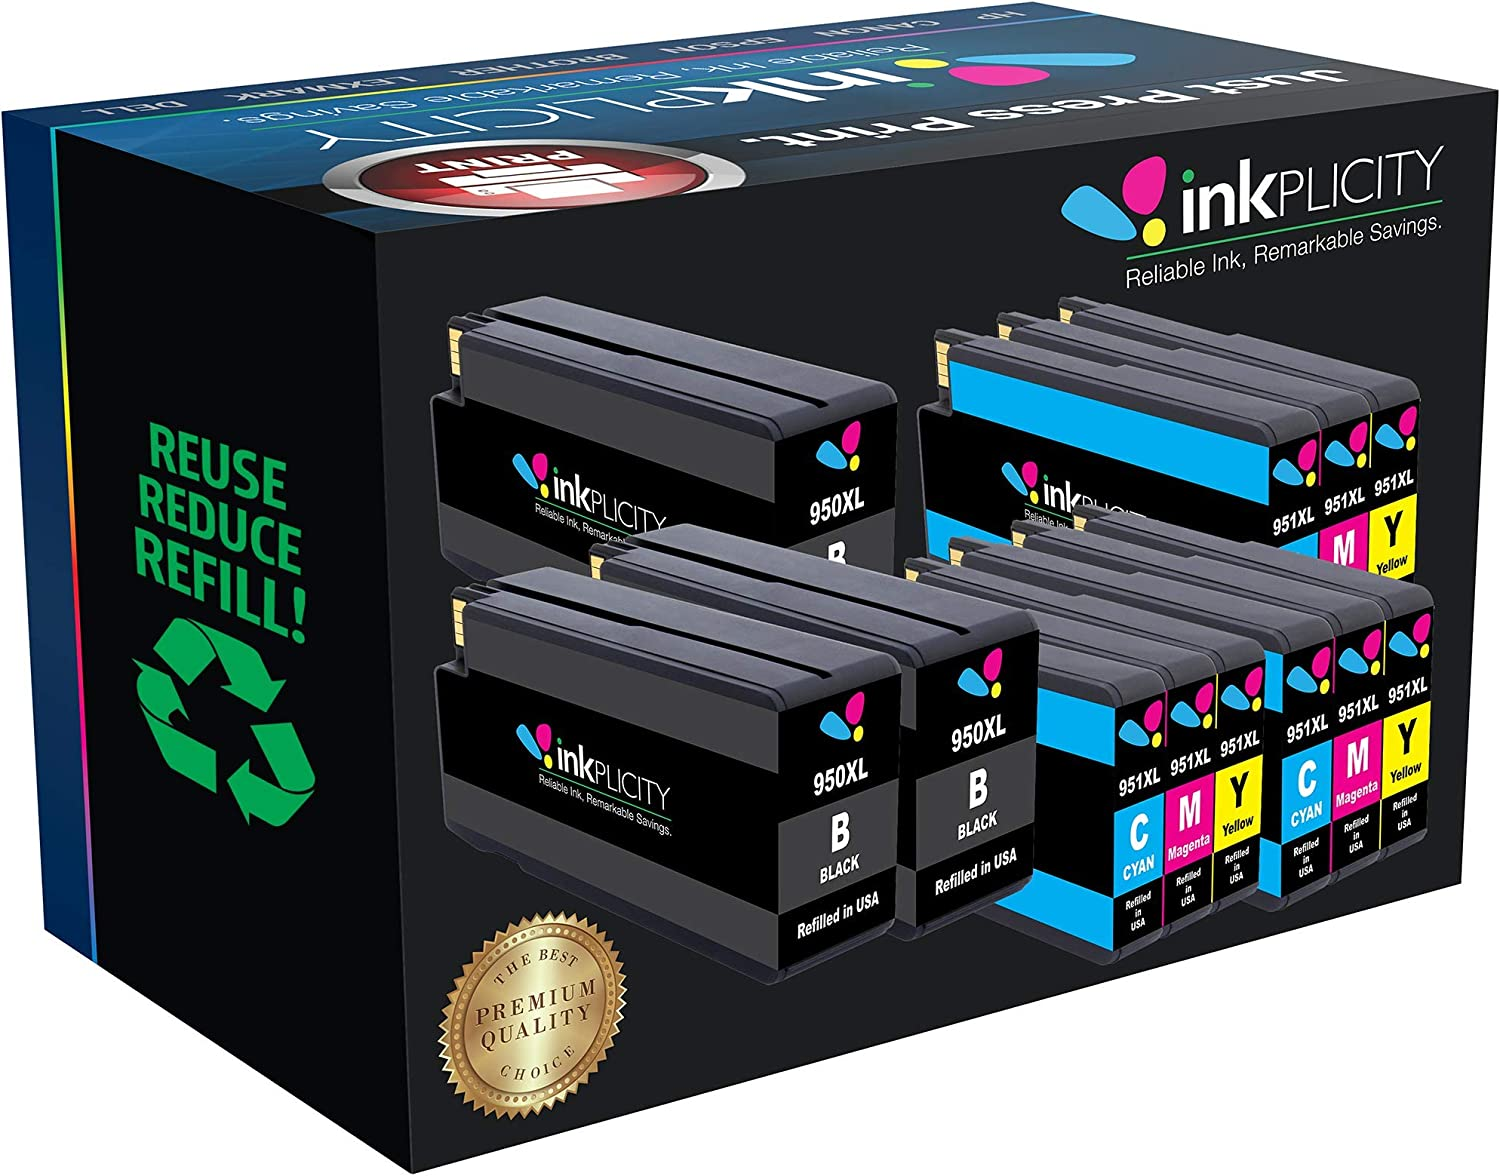 Inkplicity Refilled Ink Cartridge Replacement for HP 950XL-951XL (Black, Cyan, Magenta, Yellow, 12-Pack)